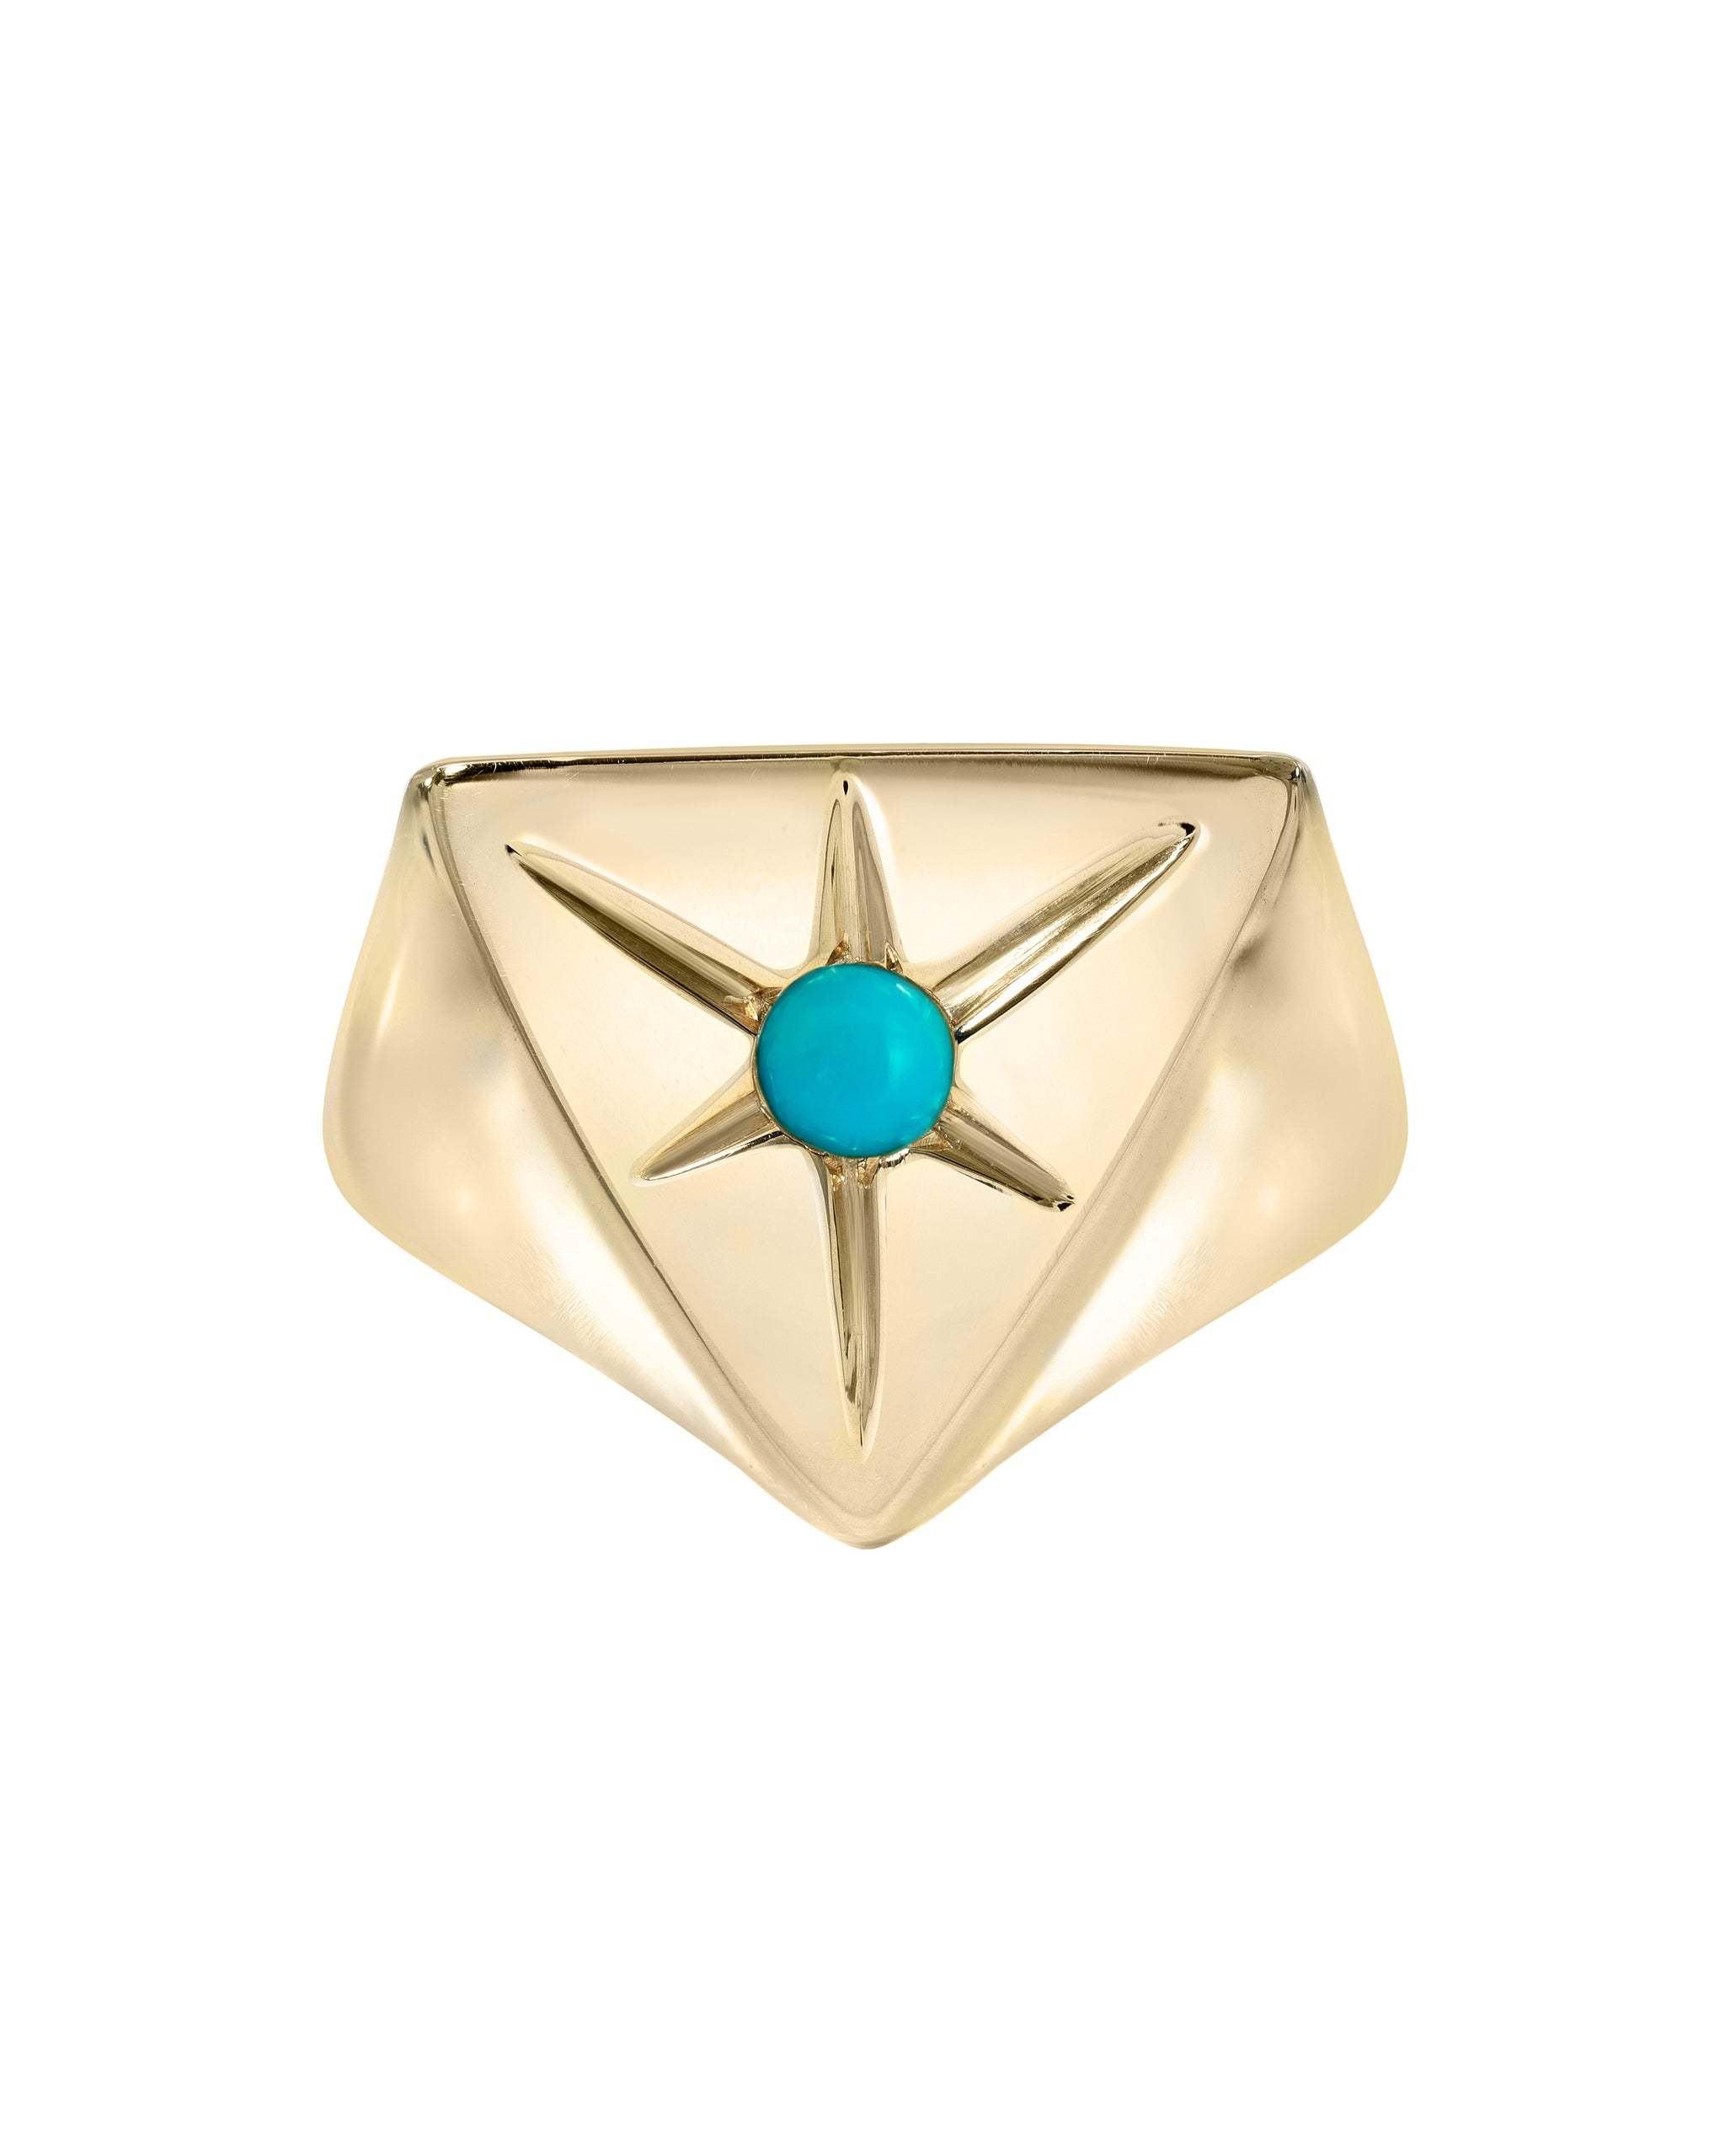 In the Stars Ring, Kingman Turquoise & Gold Vermeil pyramid signet ring, handmade by Turquoise + Tobacco in Los Angeles, California